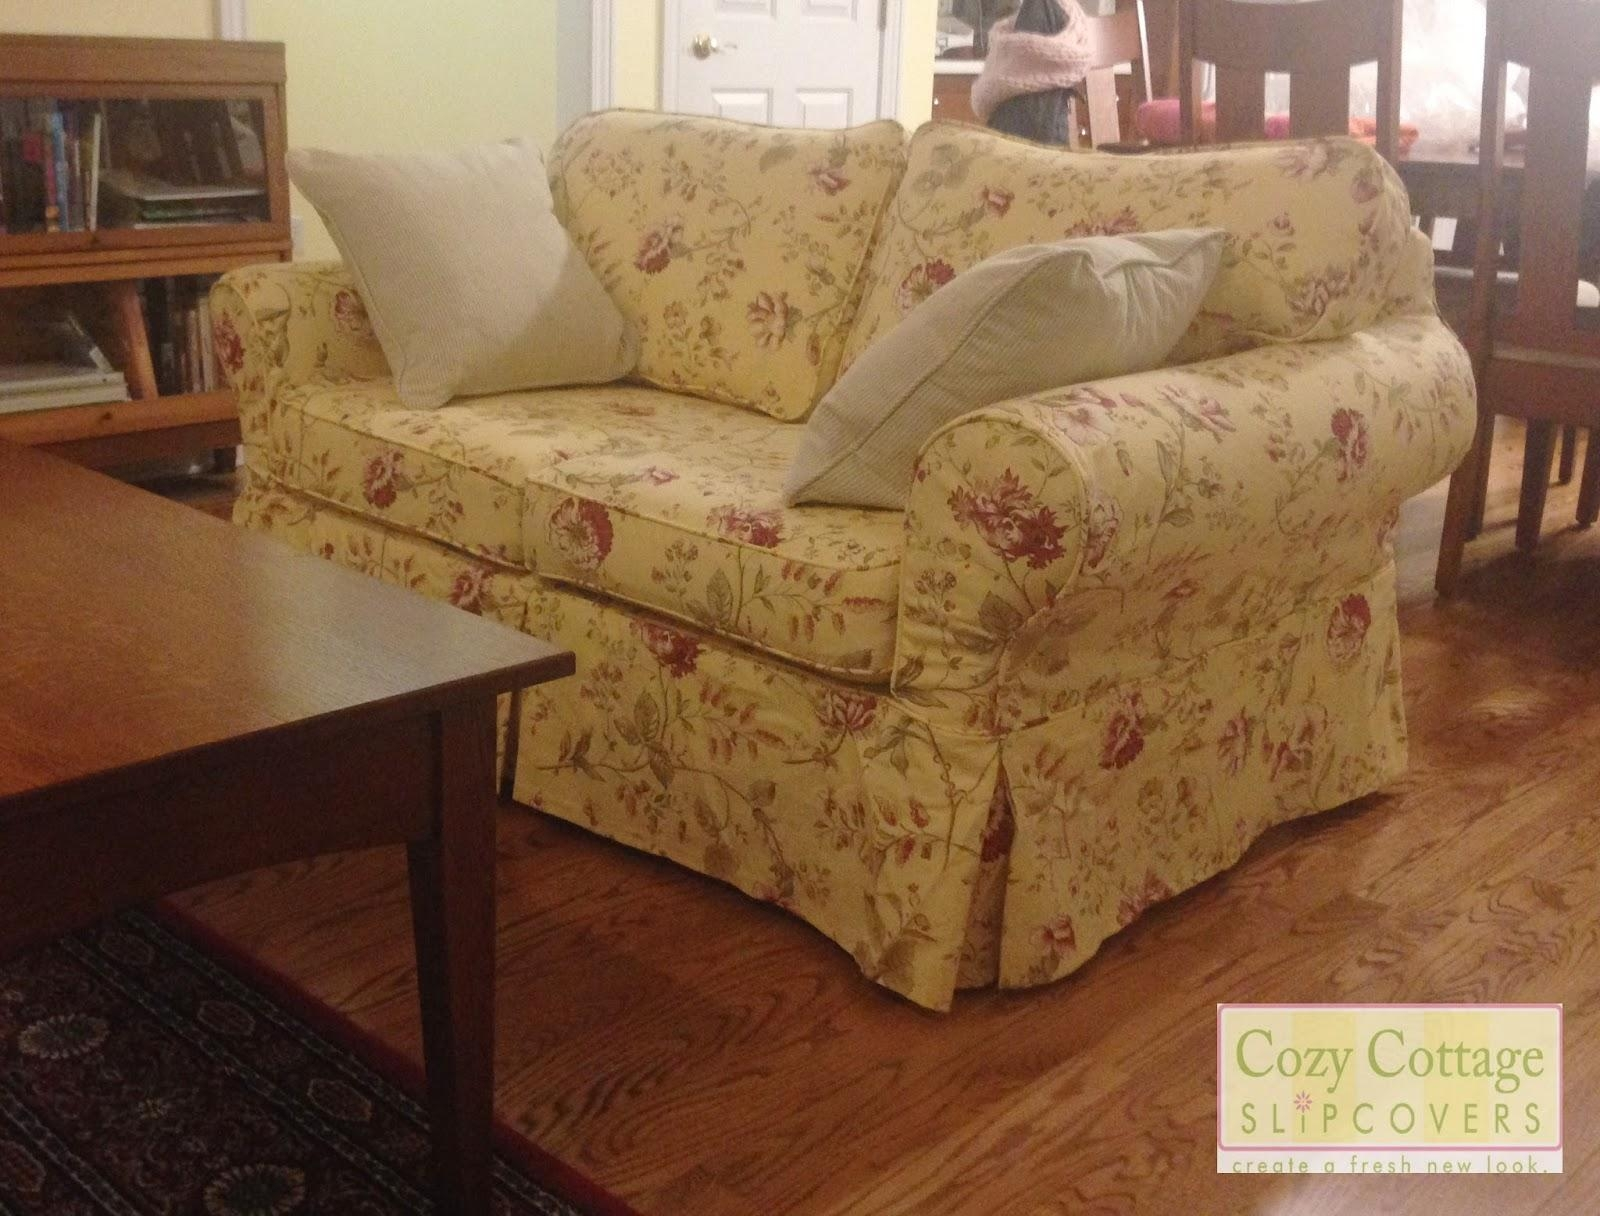 Cottage Sofas And Chairs | Tehranmix Decoration With Regard To Country Cottage Sofas And Chairs (Image 6 of 20)